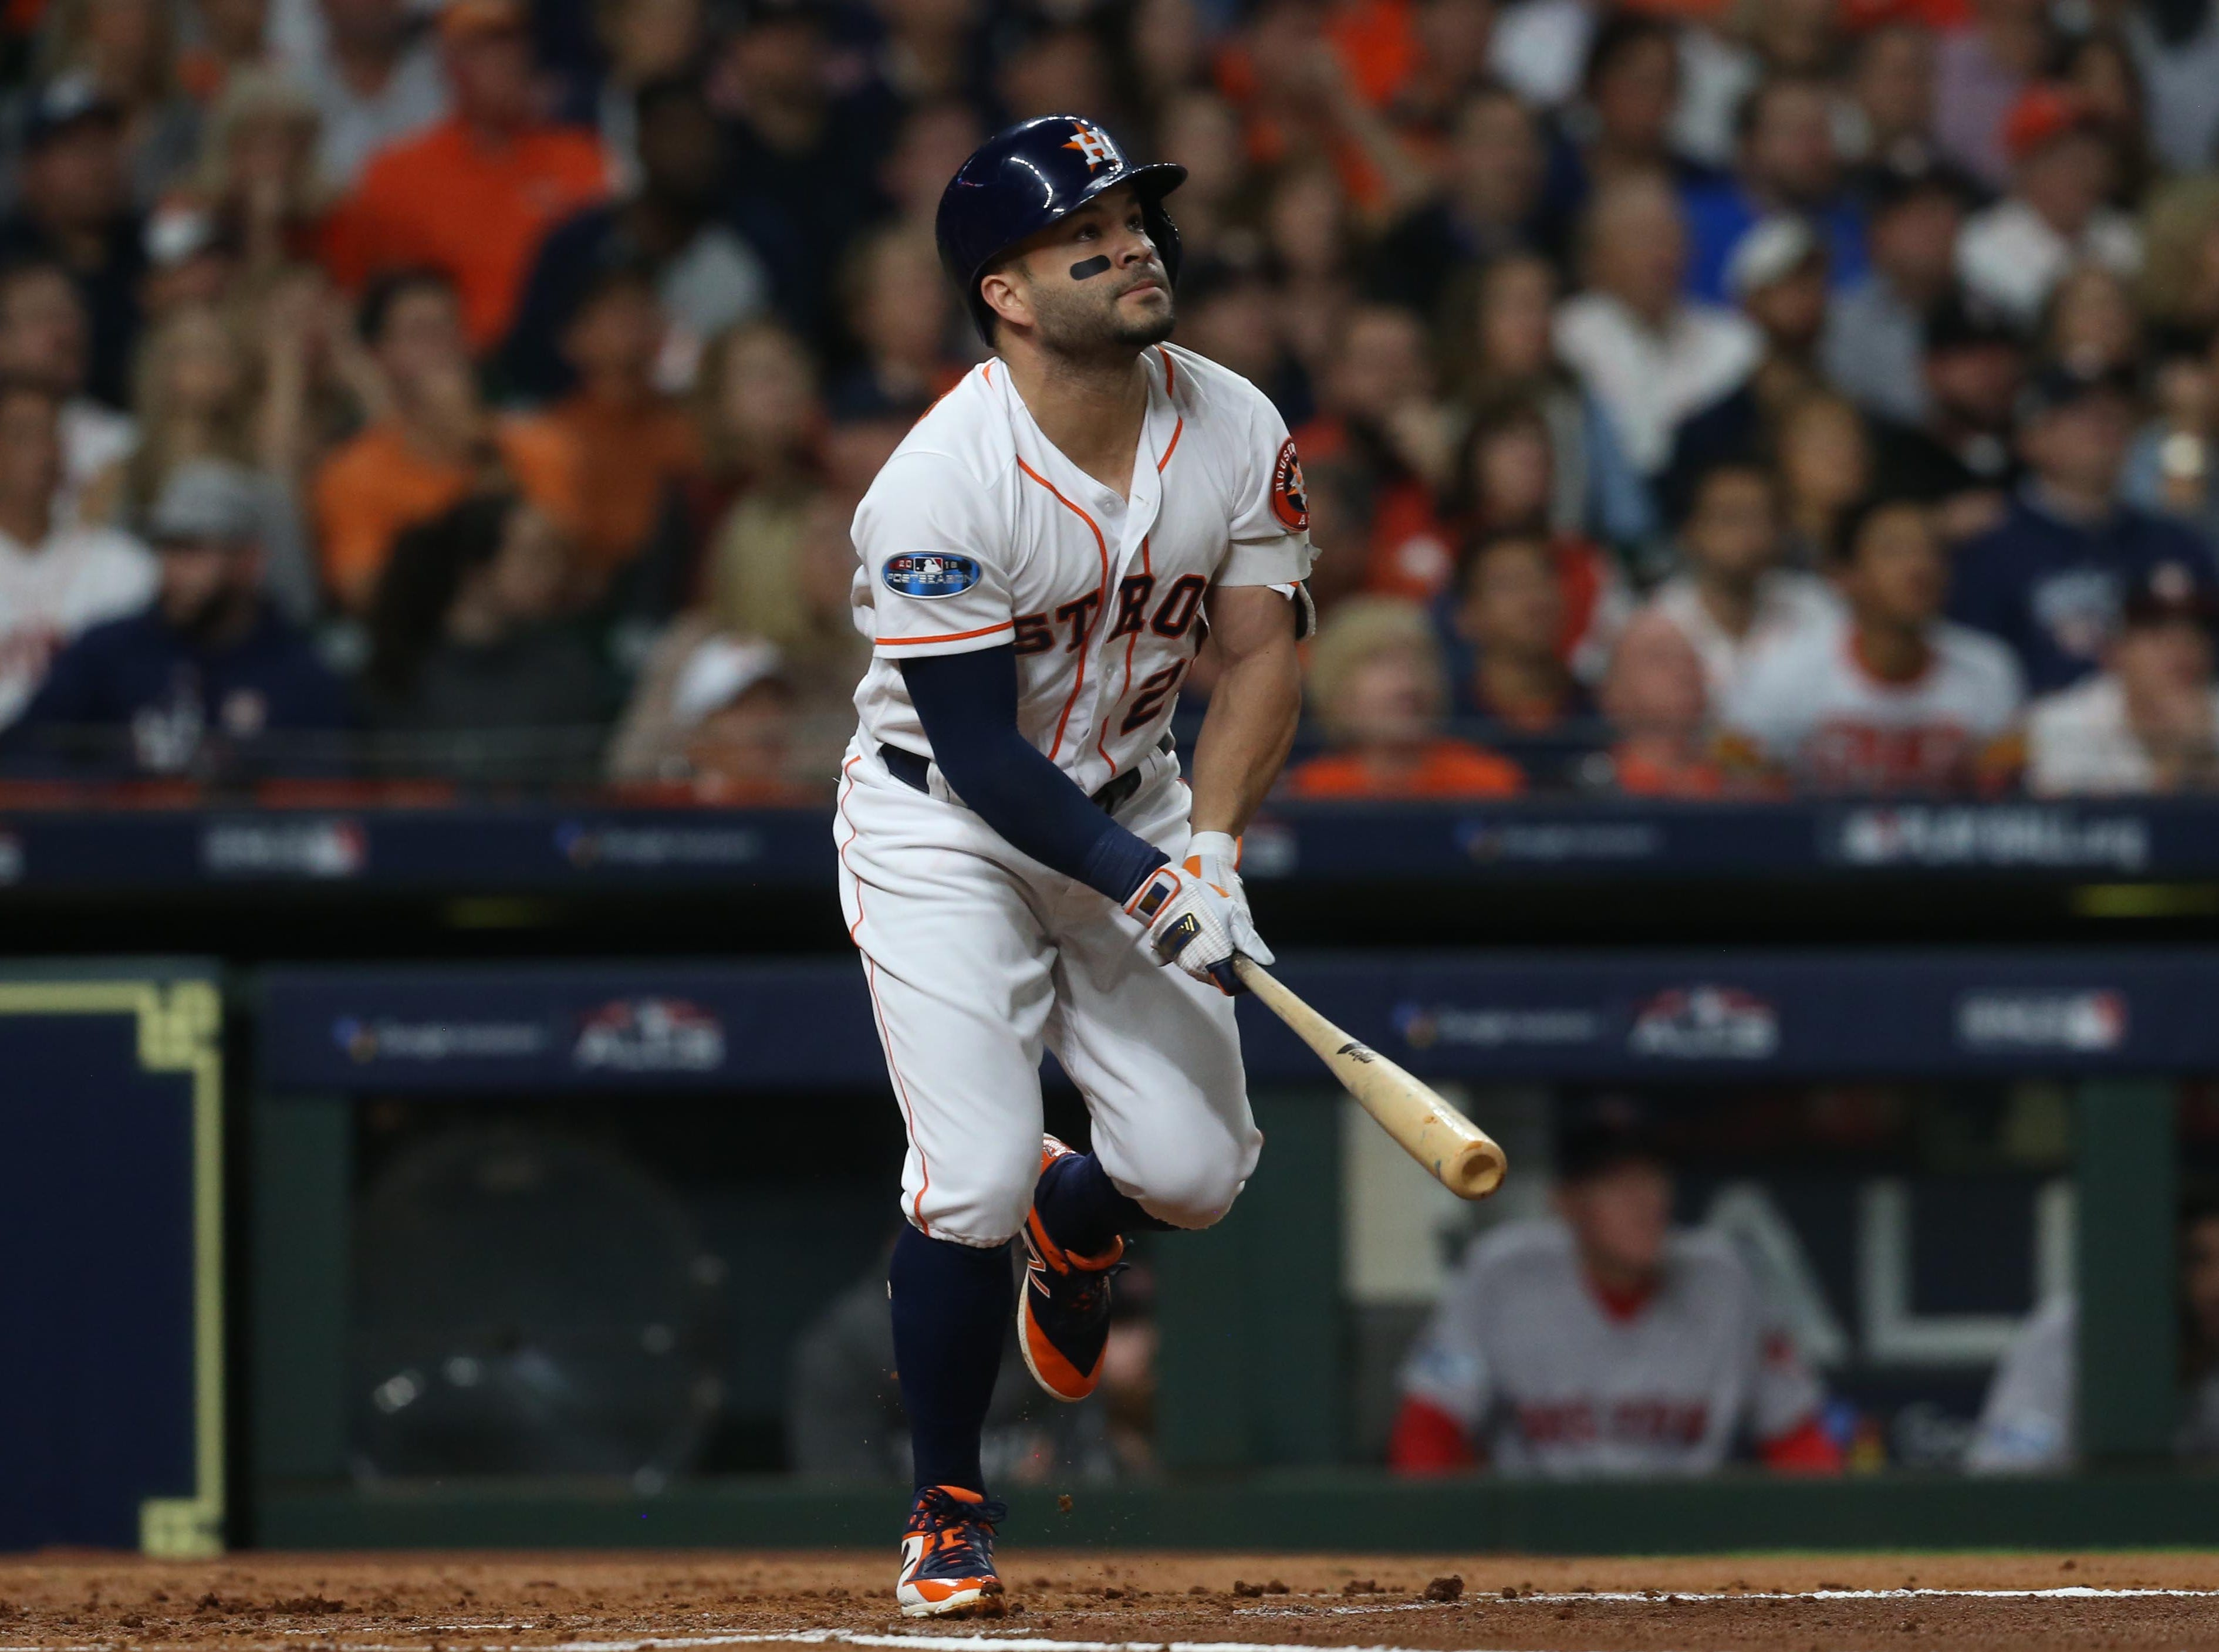 8. Jose Altuve, Houston Astros second baseman.